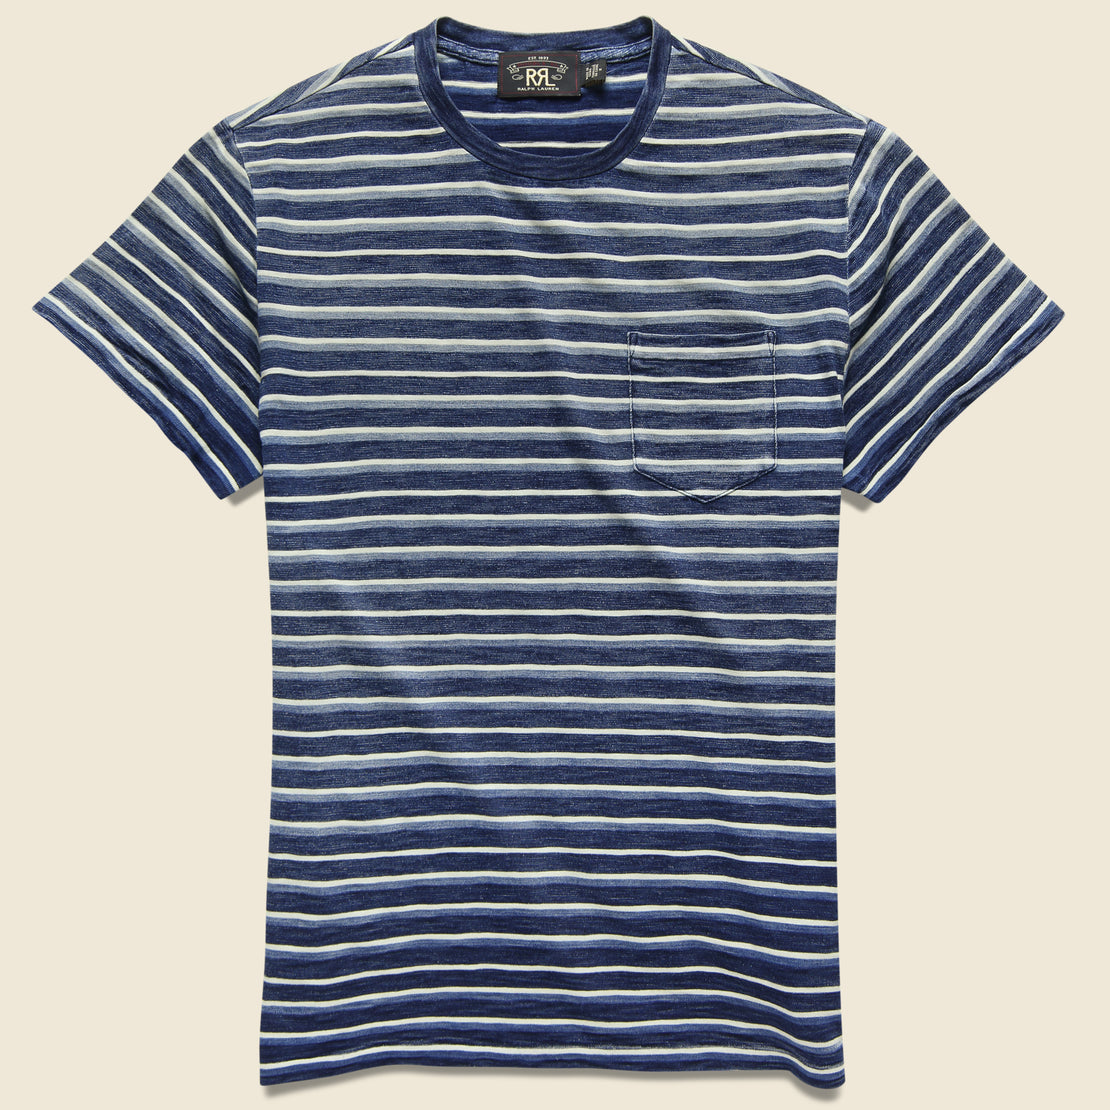 638c4e42 RRL Striped Pocket Tee - Dark Indigo Multi ...